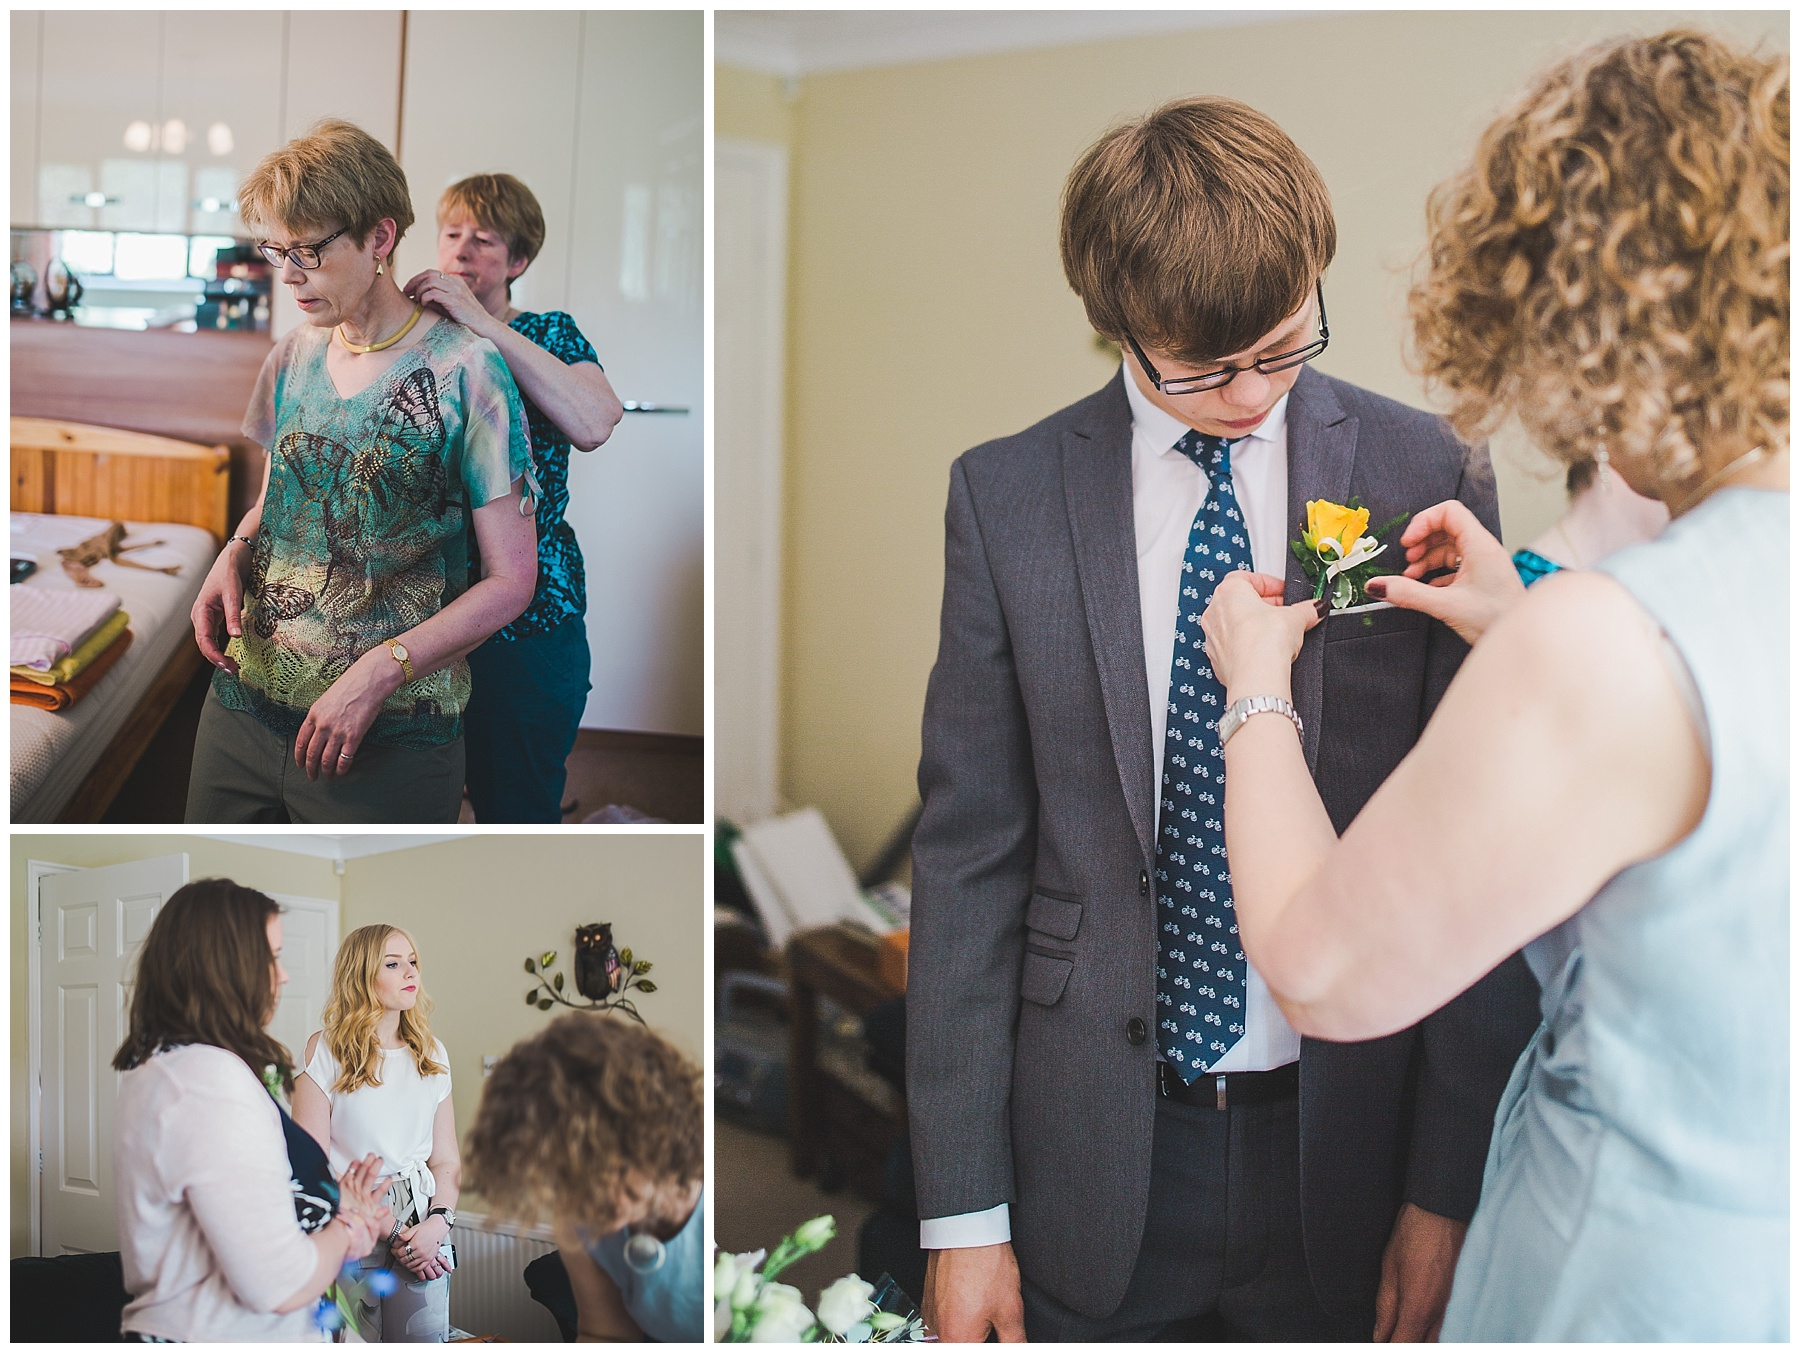 A helping hand needed to put the flower of a guest.